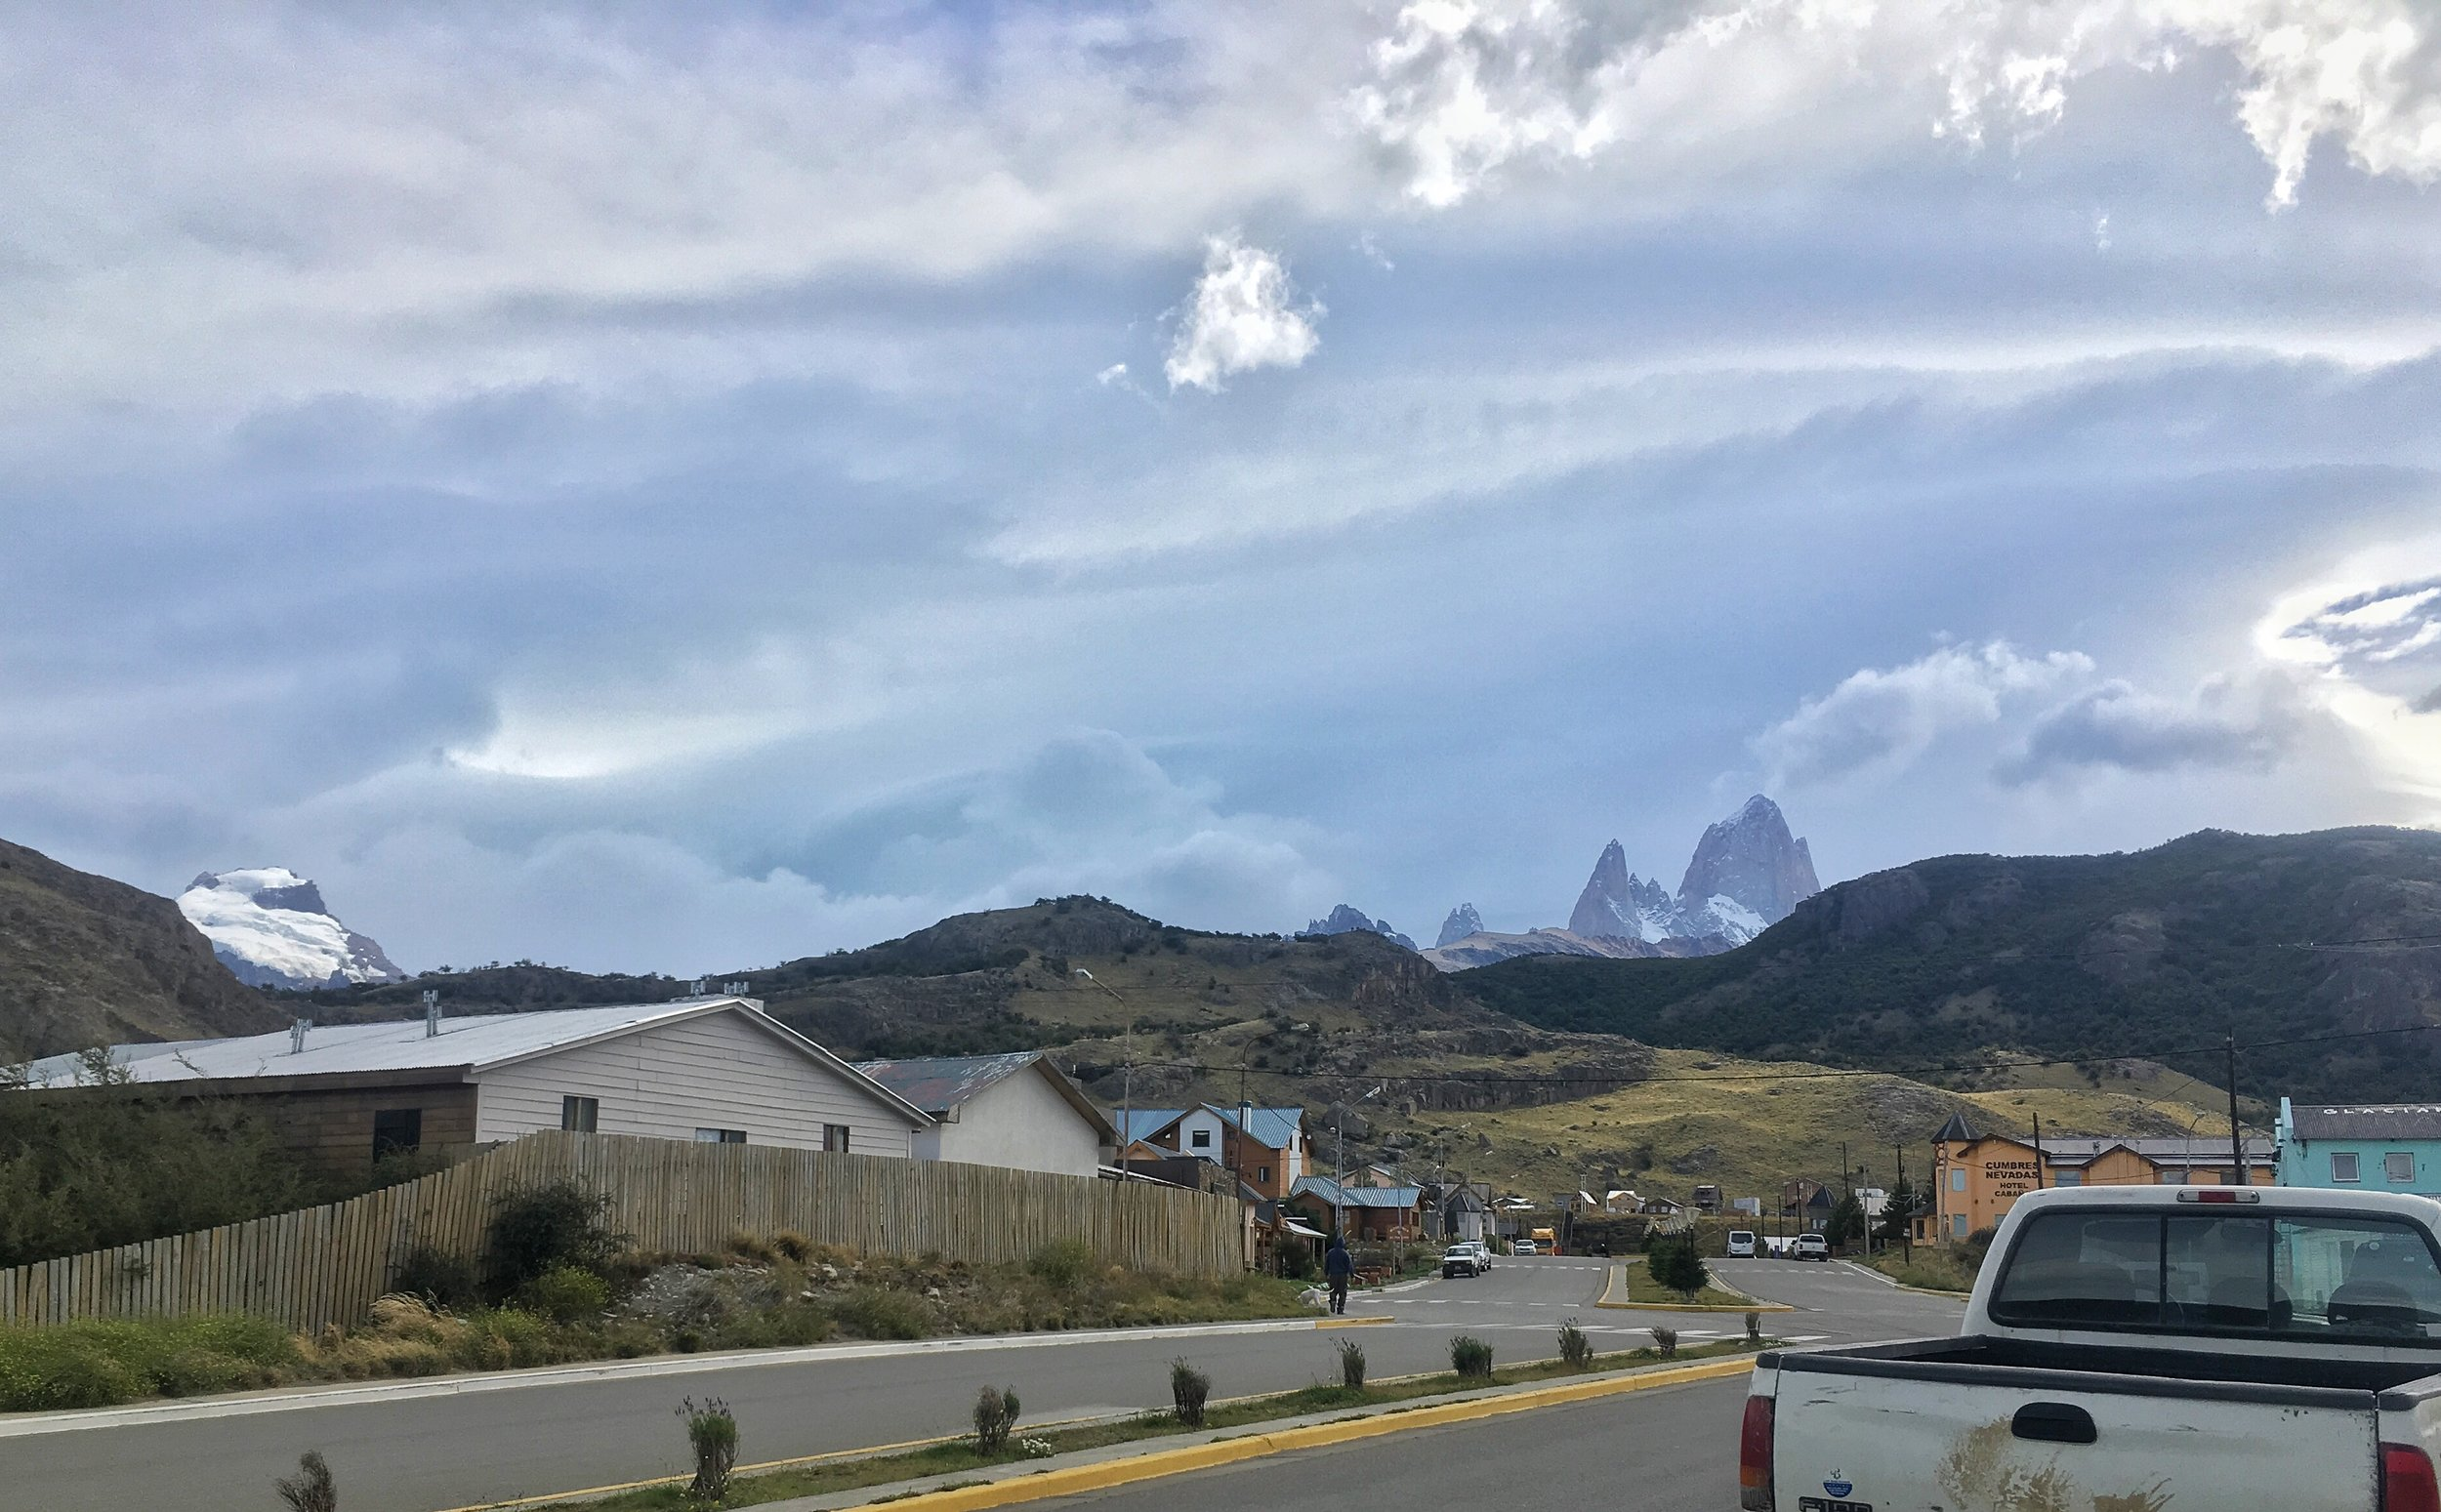 Driving into El Chalten, Fitzroy standing tall off in the distance